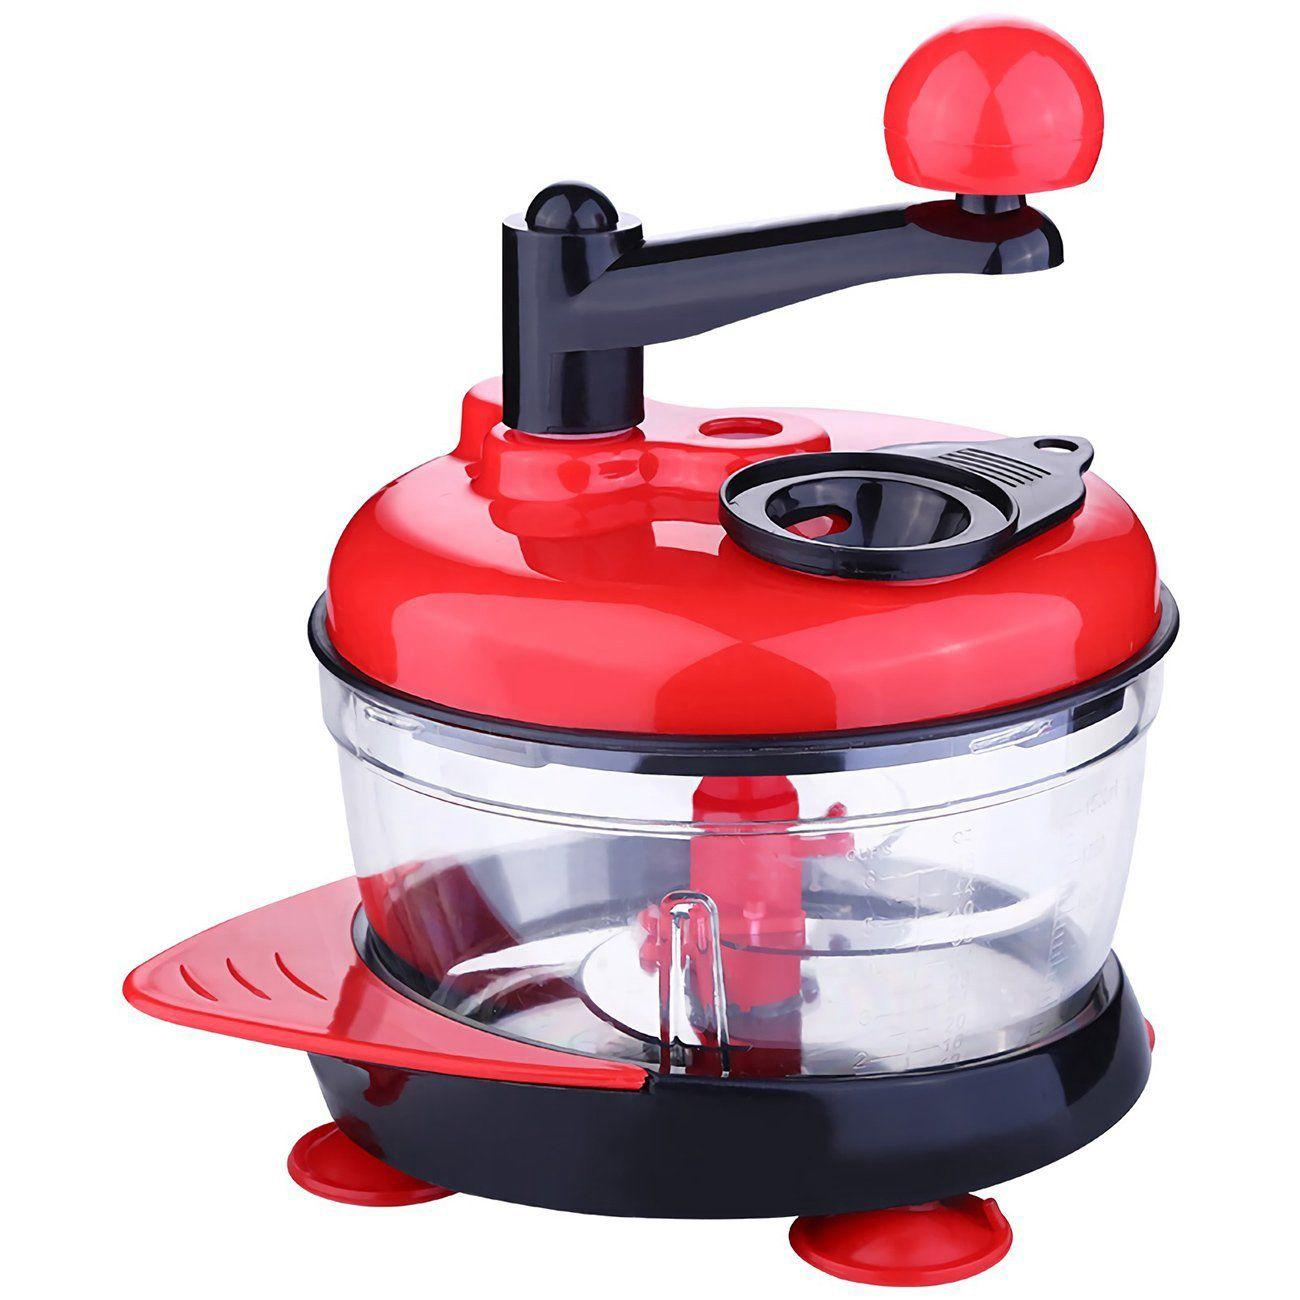 Multi-Function Manual Food Processor Meat Grinder Vegetable Chopper Shredder Cutter Egg Blender High-capacity Kitchen Fruit Vegetable Cutter Cooking Gadget (Red)